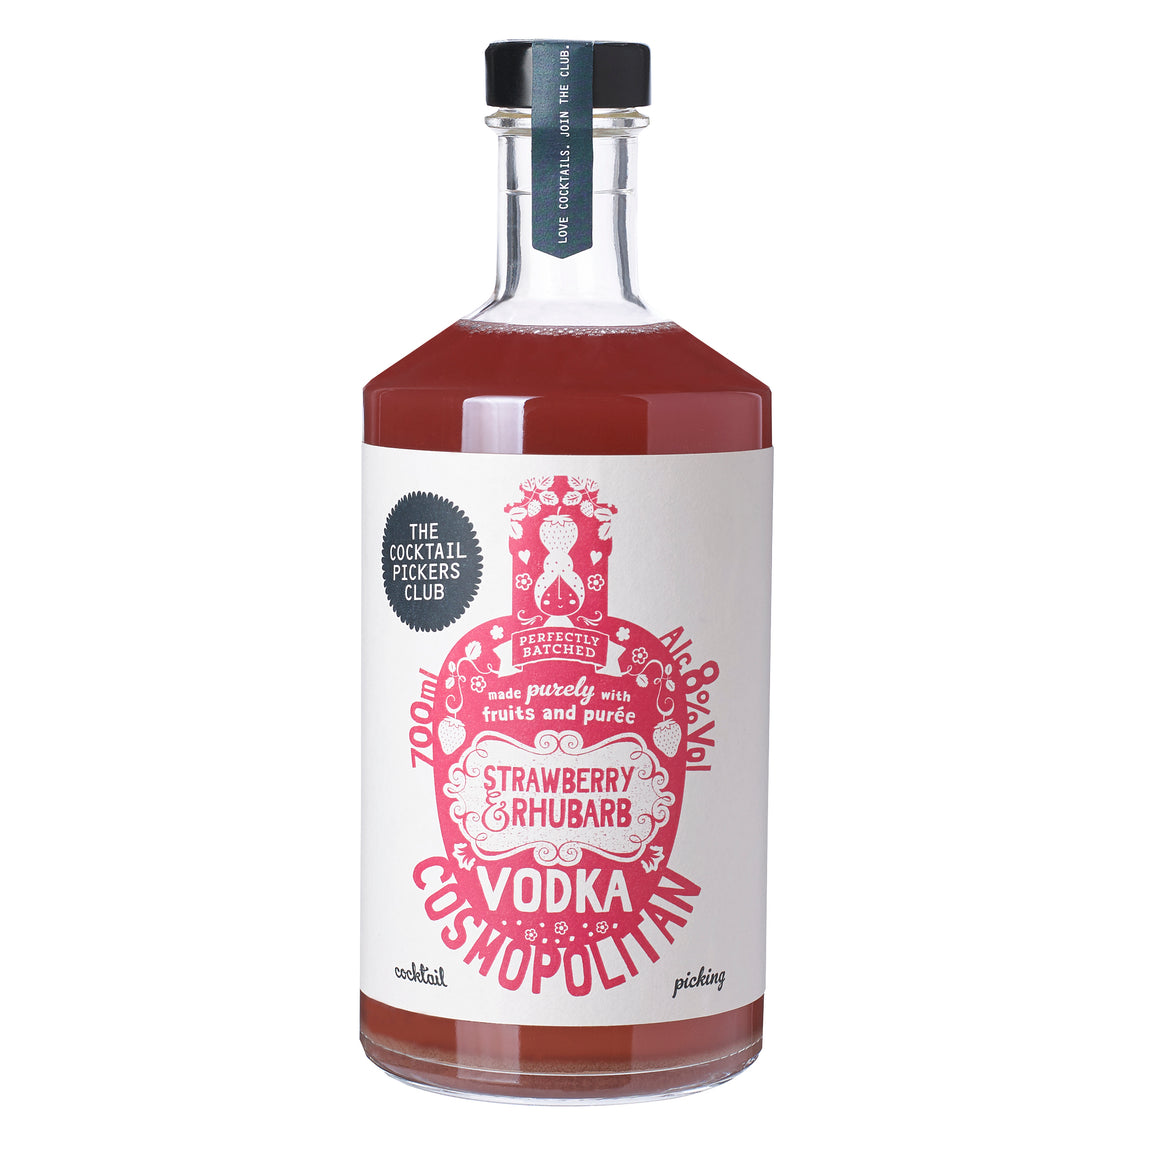 Strawberry & Rhubarb Vodka Cosmopolitan 3x 700ml